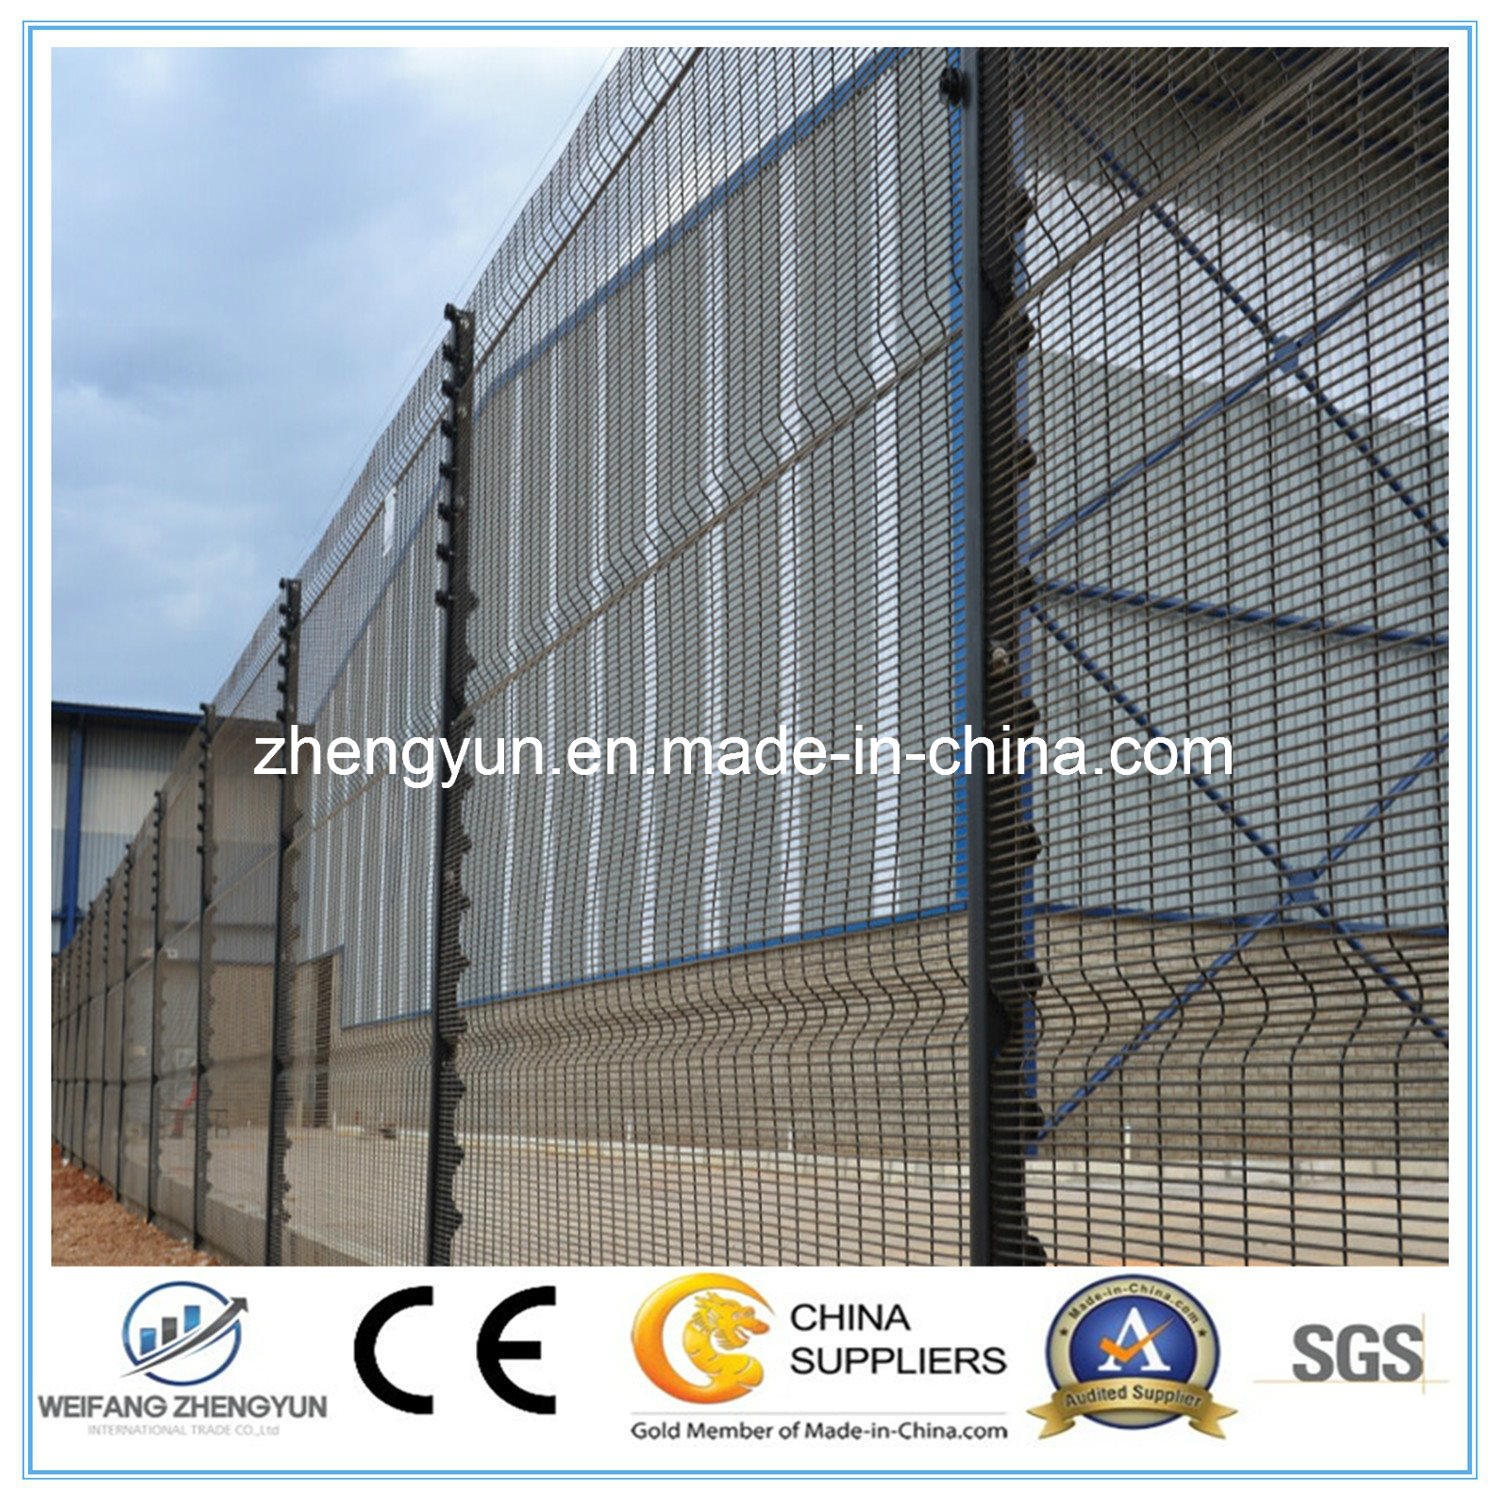 China Powder Coated Anti Climbing Welded 358 High Security Fence ...